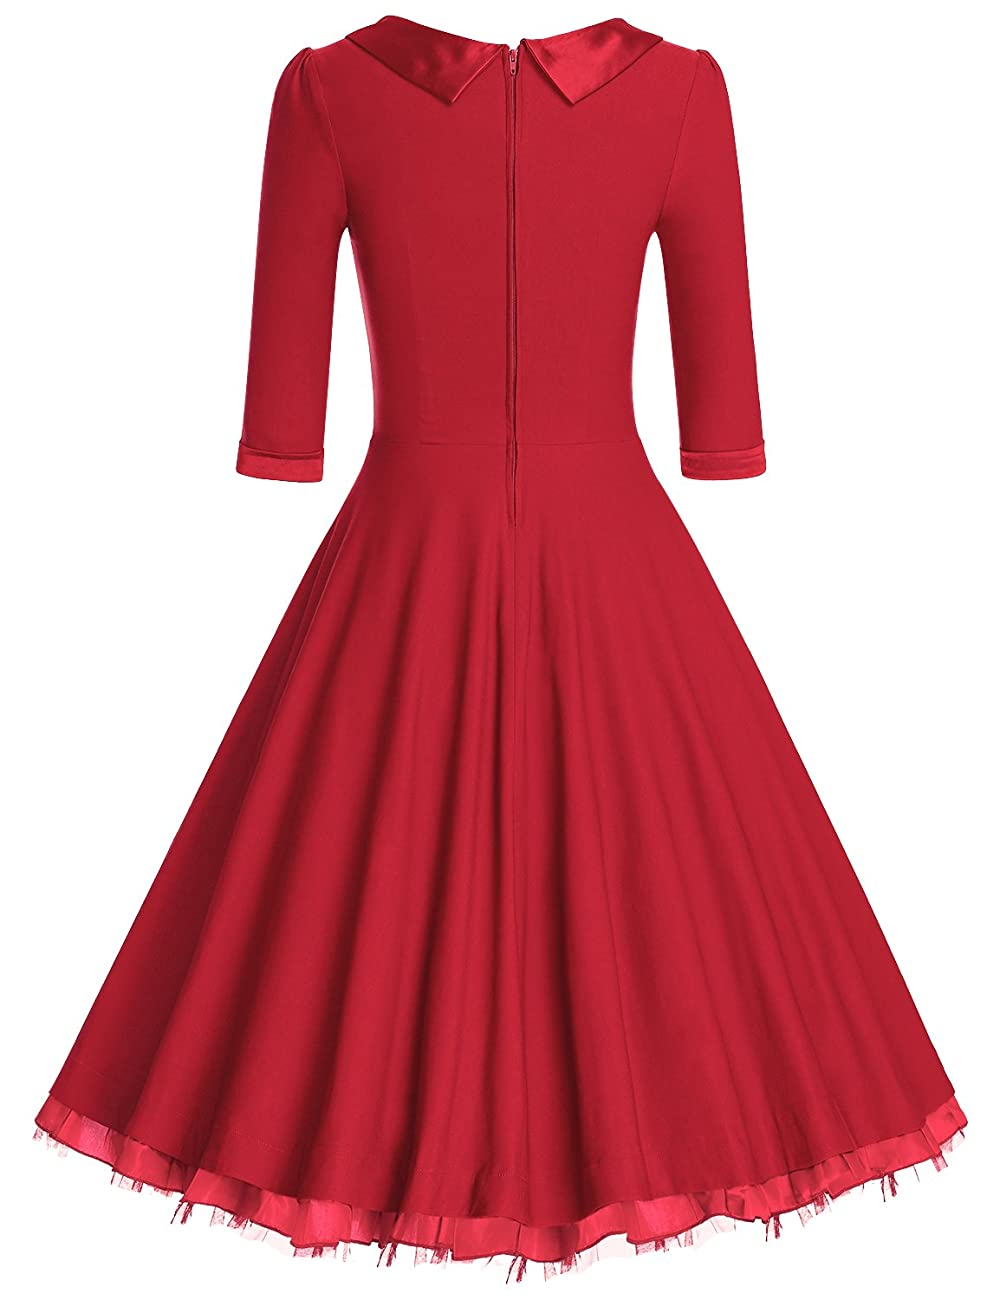 MUXXN Women's 1950s Vintage 3/4 Sleeve Rockabilly Swing Dress 1